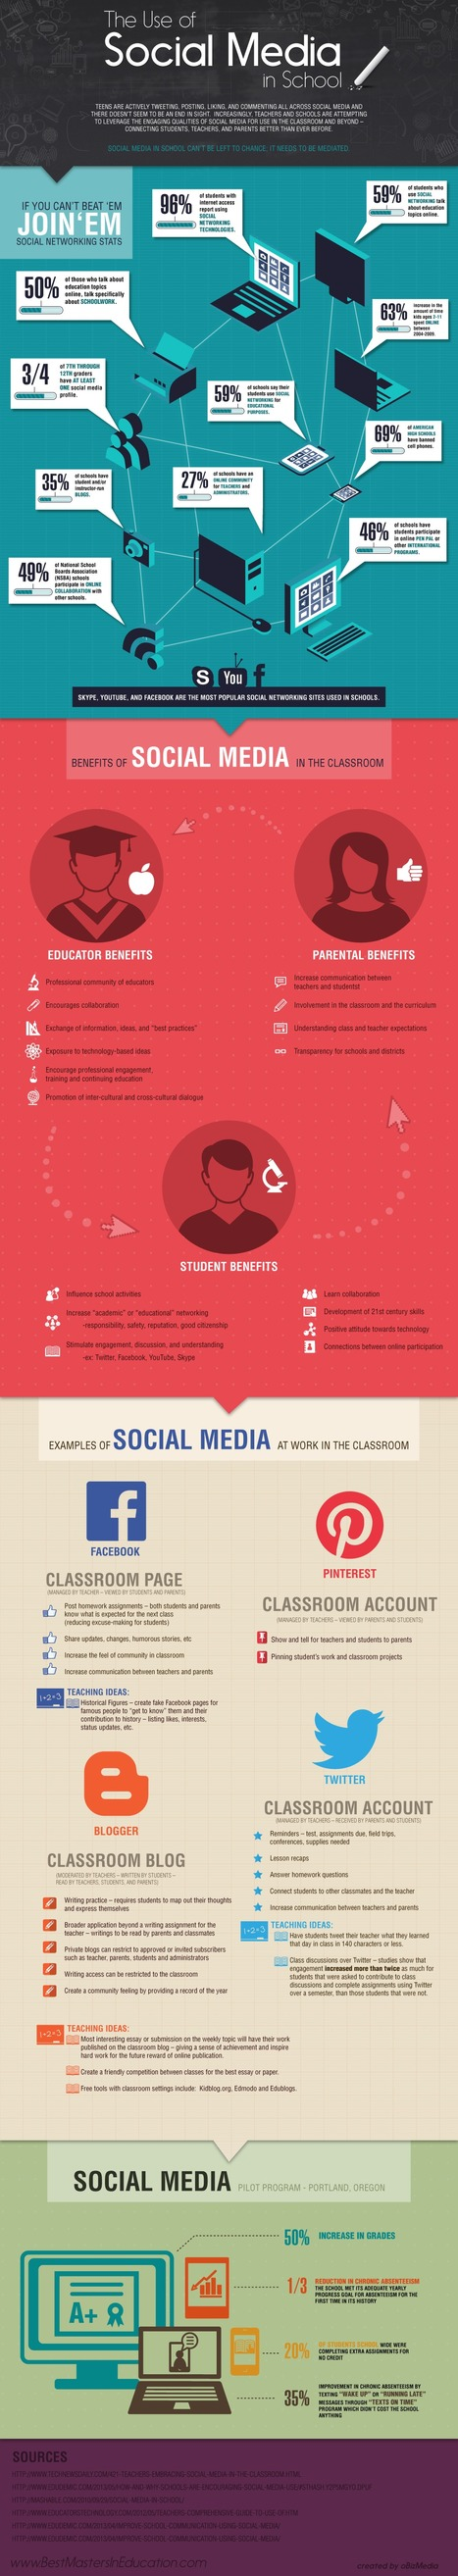 Social Media 101: Is There a Place For Social Media in Classrooms? [Infographic] | Pedagogia Infomacional | Scoop.it